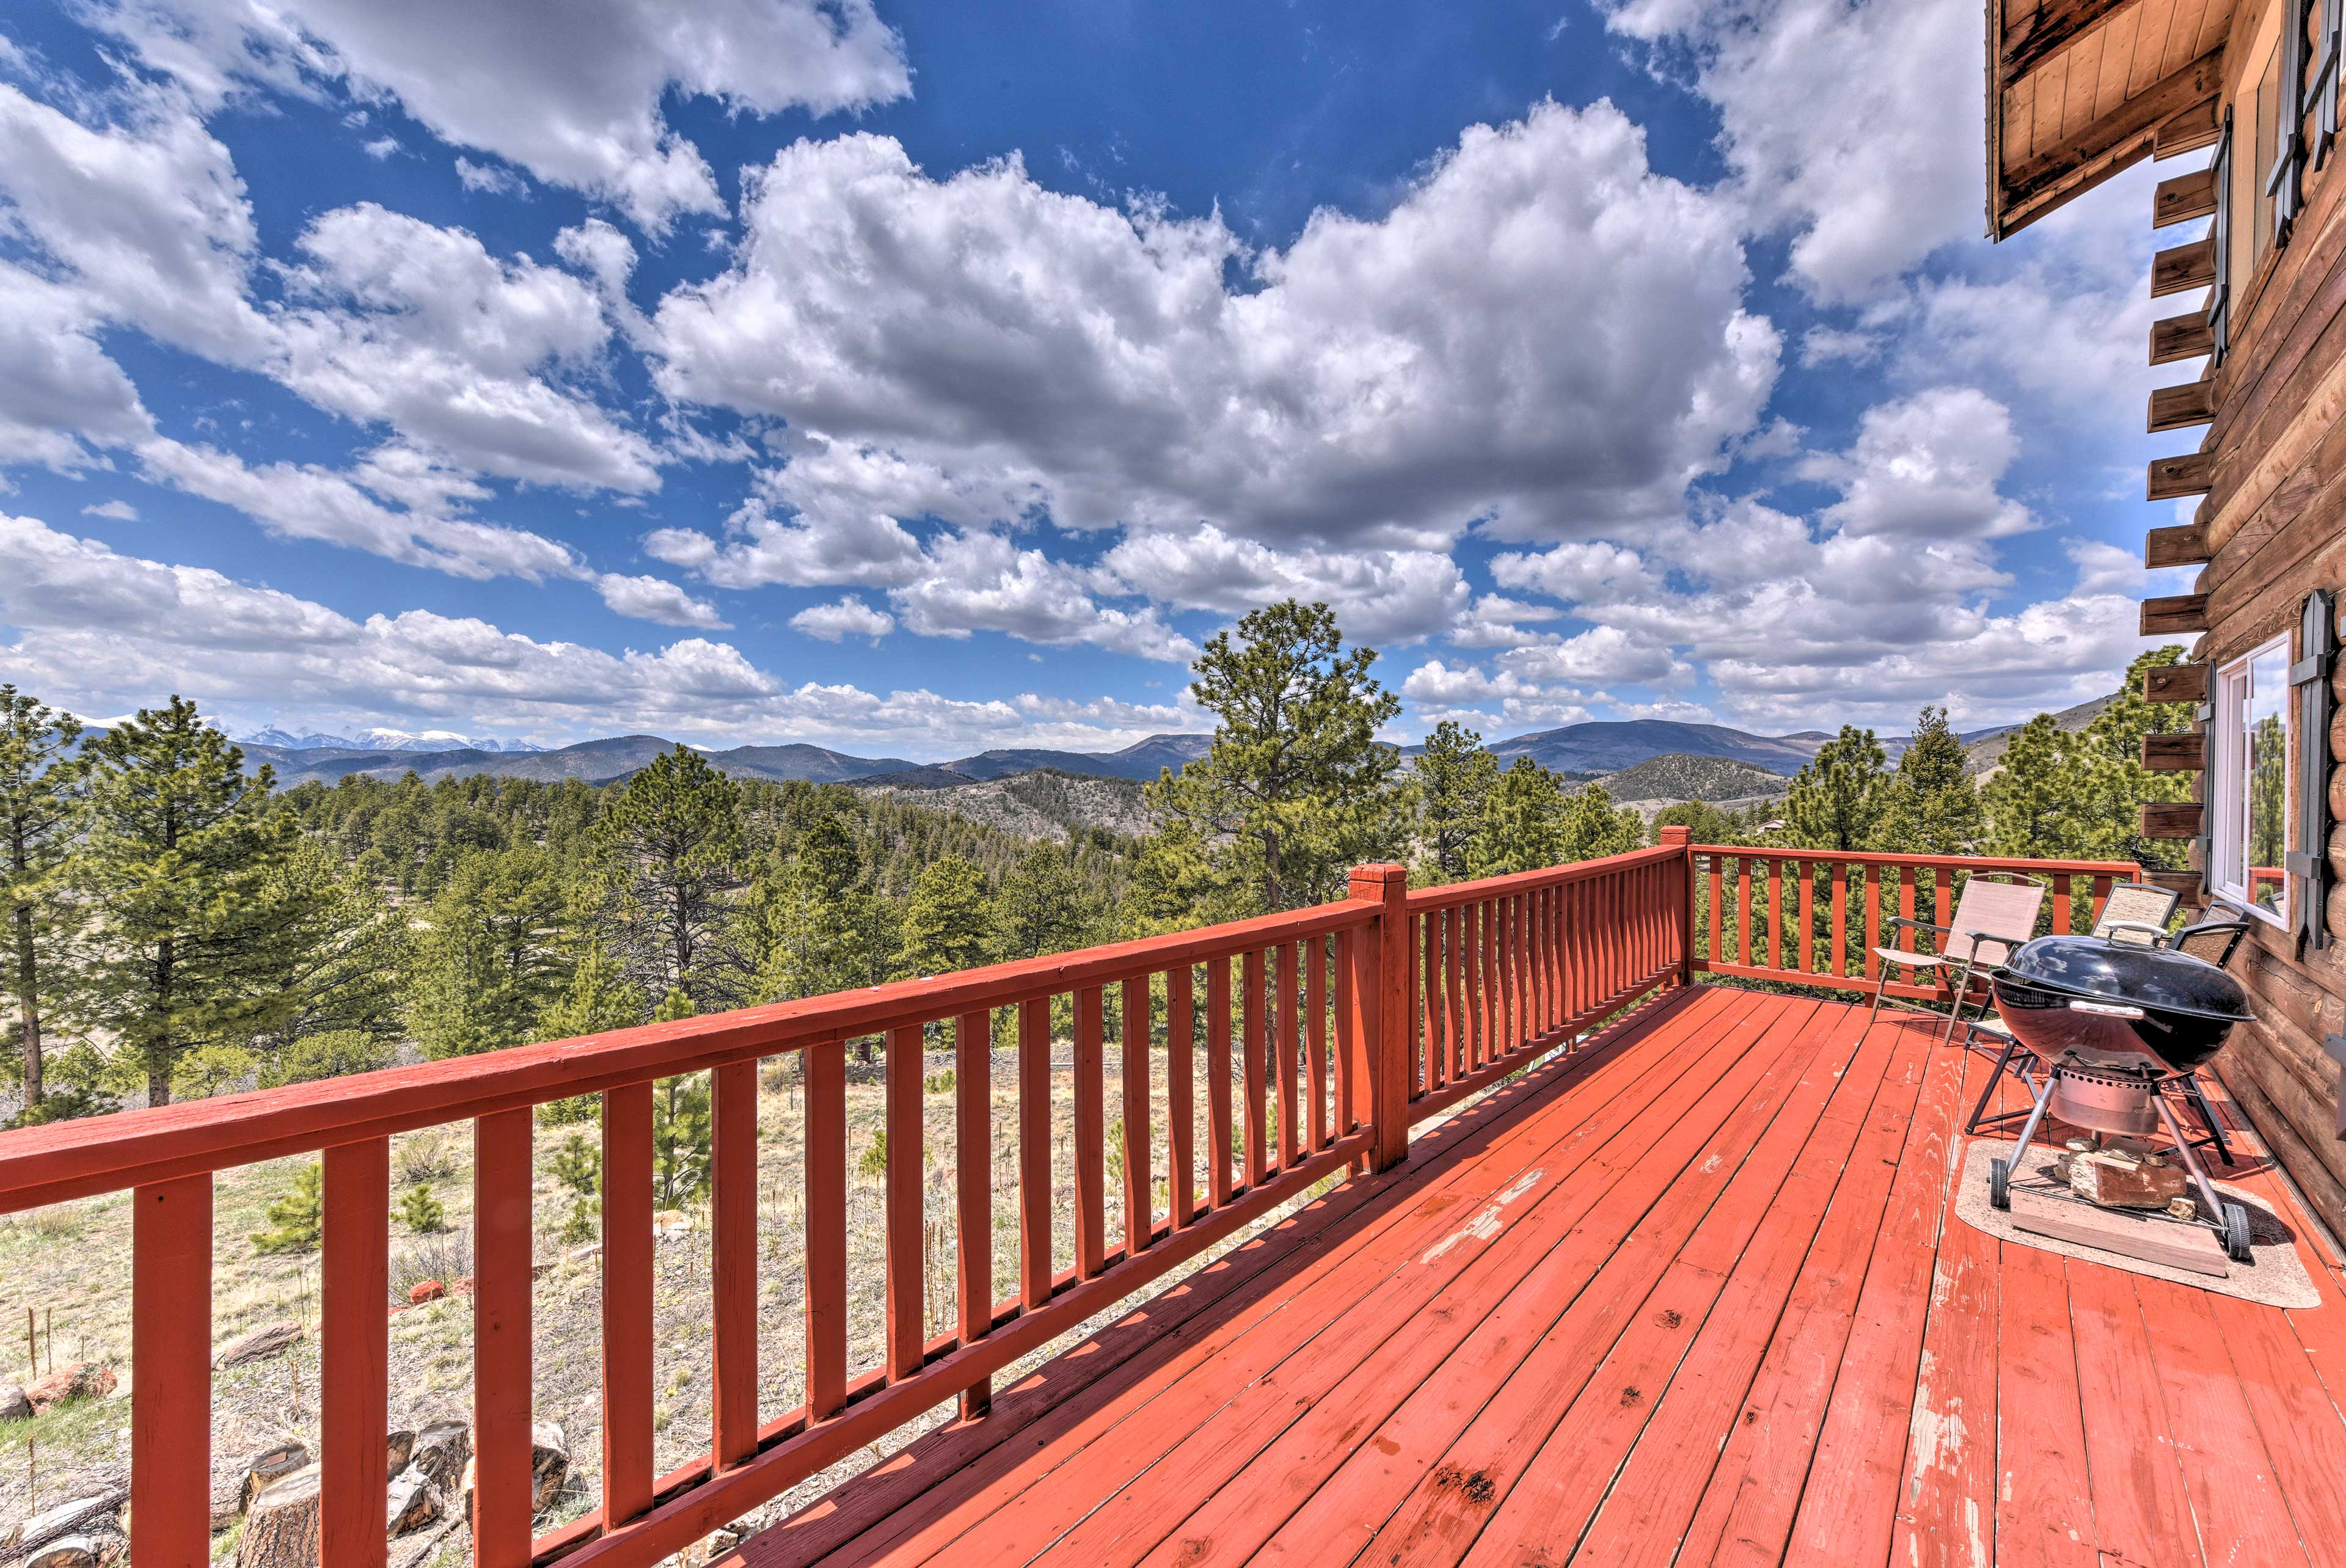 This 3-bedroom, 2-bath vacation rental for 6 offers panoramic views.